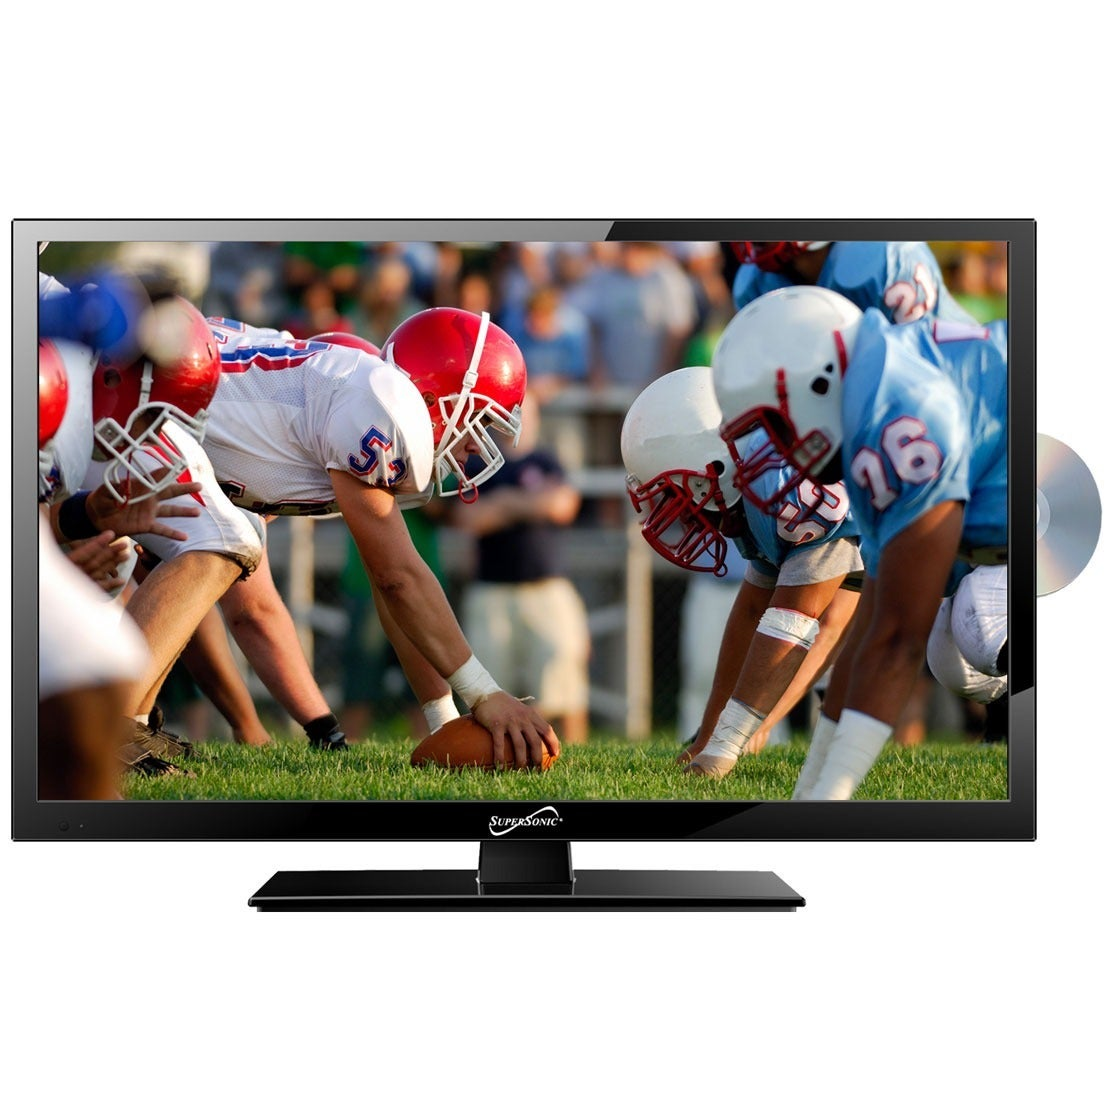 Supersonic SC-1912 19 in. Widescreen LED HDTV with Built-in DVD Player